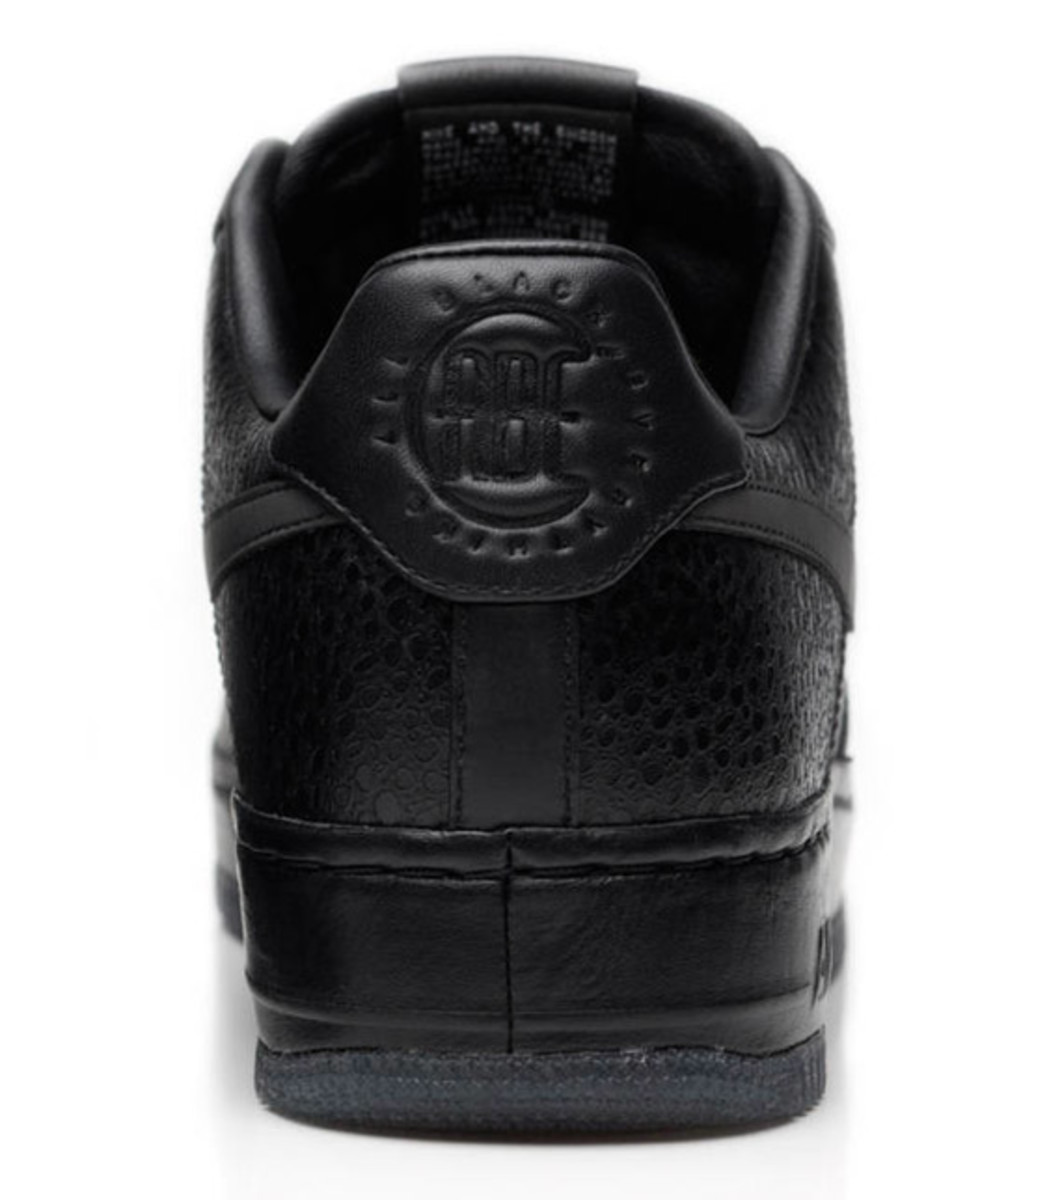 jay-z-nike-air-force-1-all-black-everything-usa-09